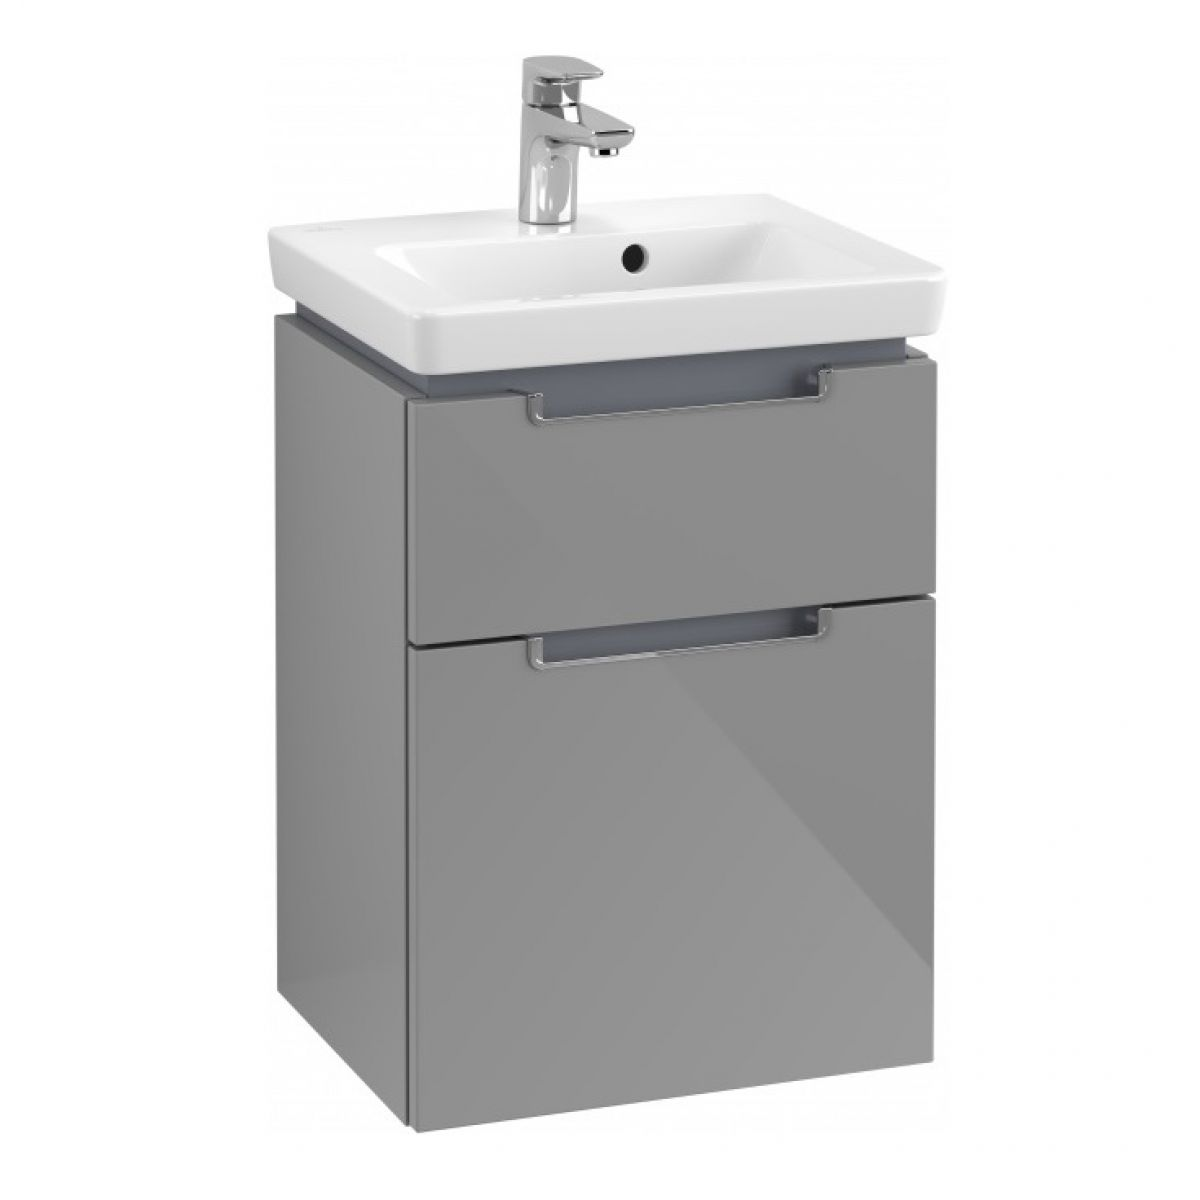 Villeroy & Boch Subway 2.0 XXL Deep Cloakroom 2 Drawer Vanity